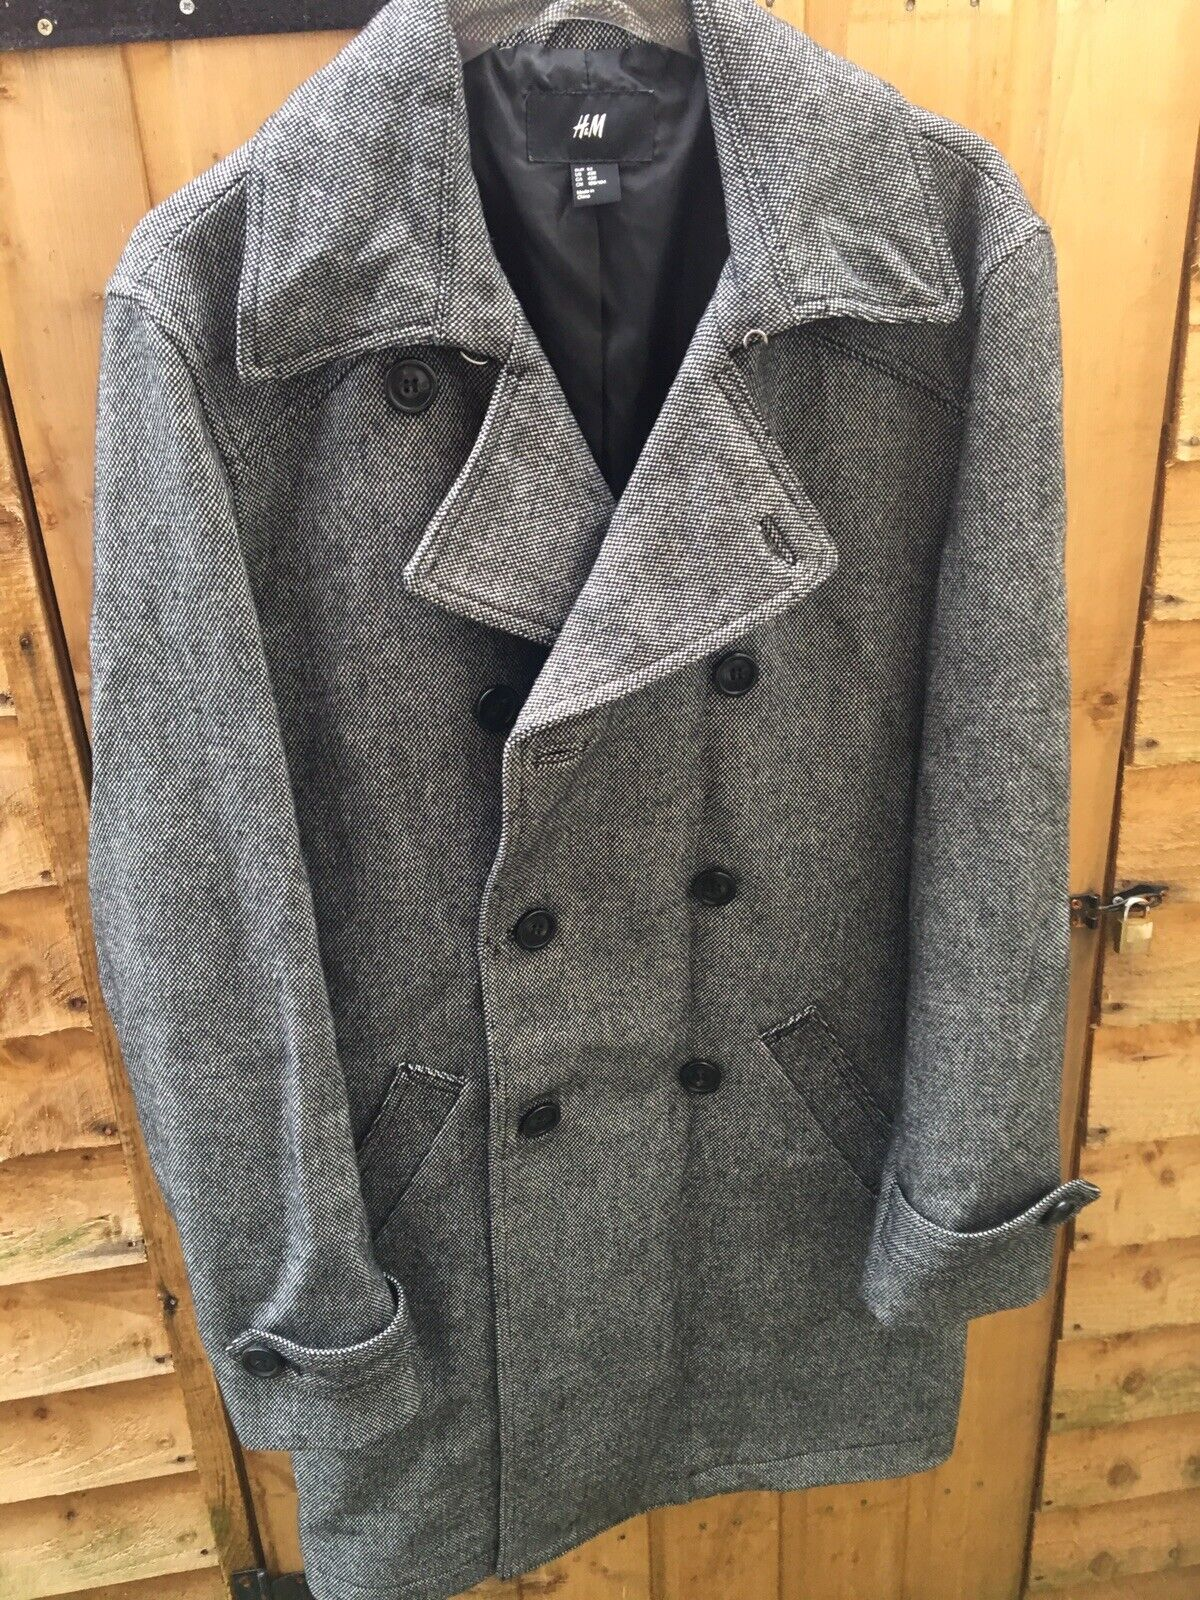 H&M Men's Double Breasted Smart Formal Coat - Wool Blend